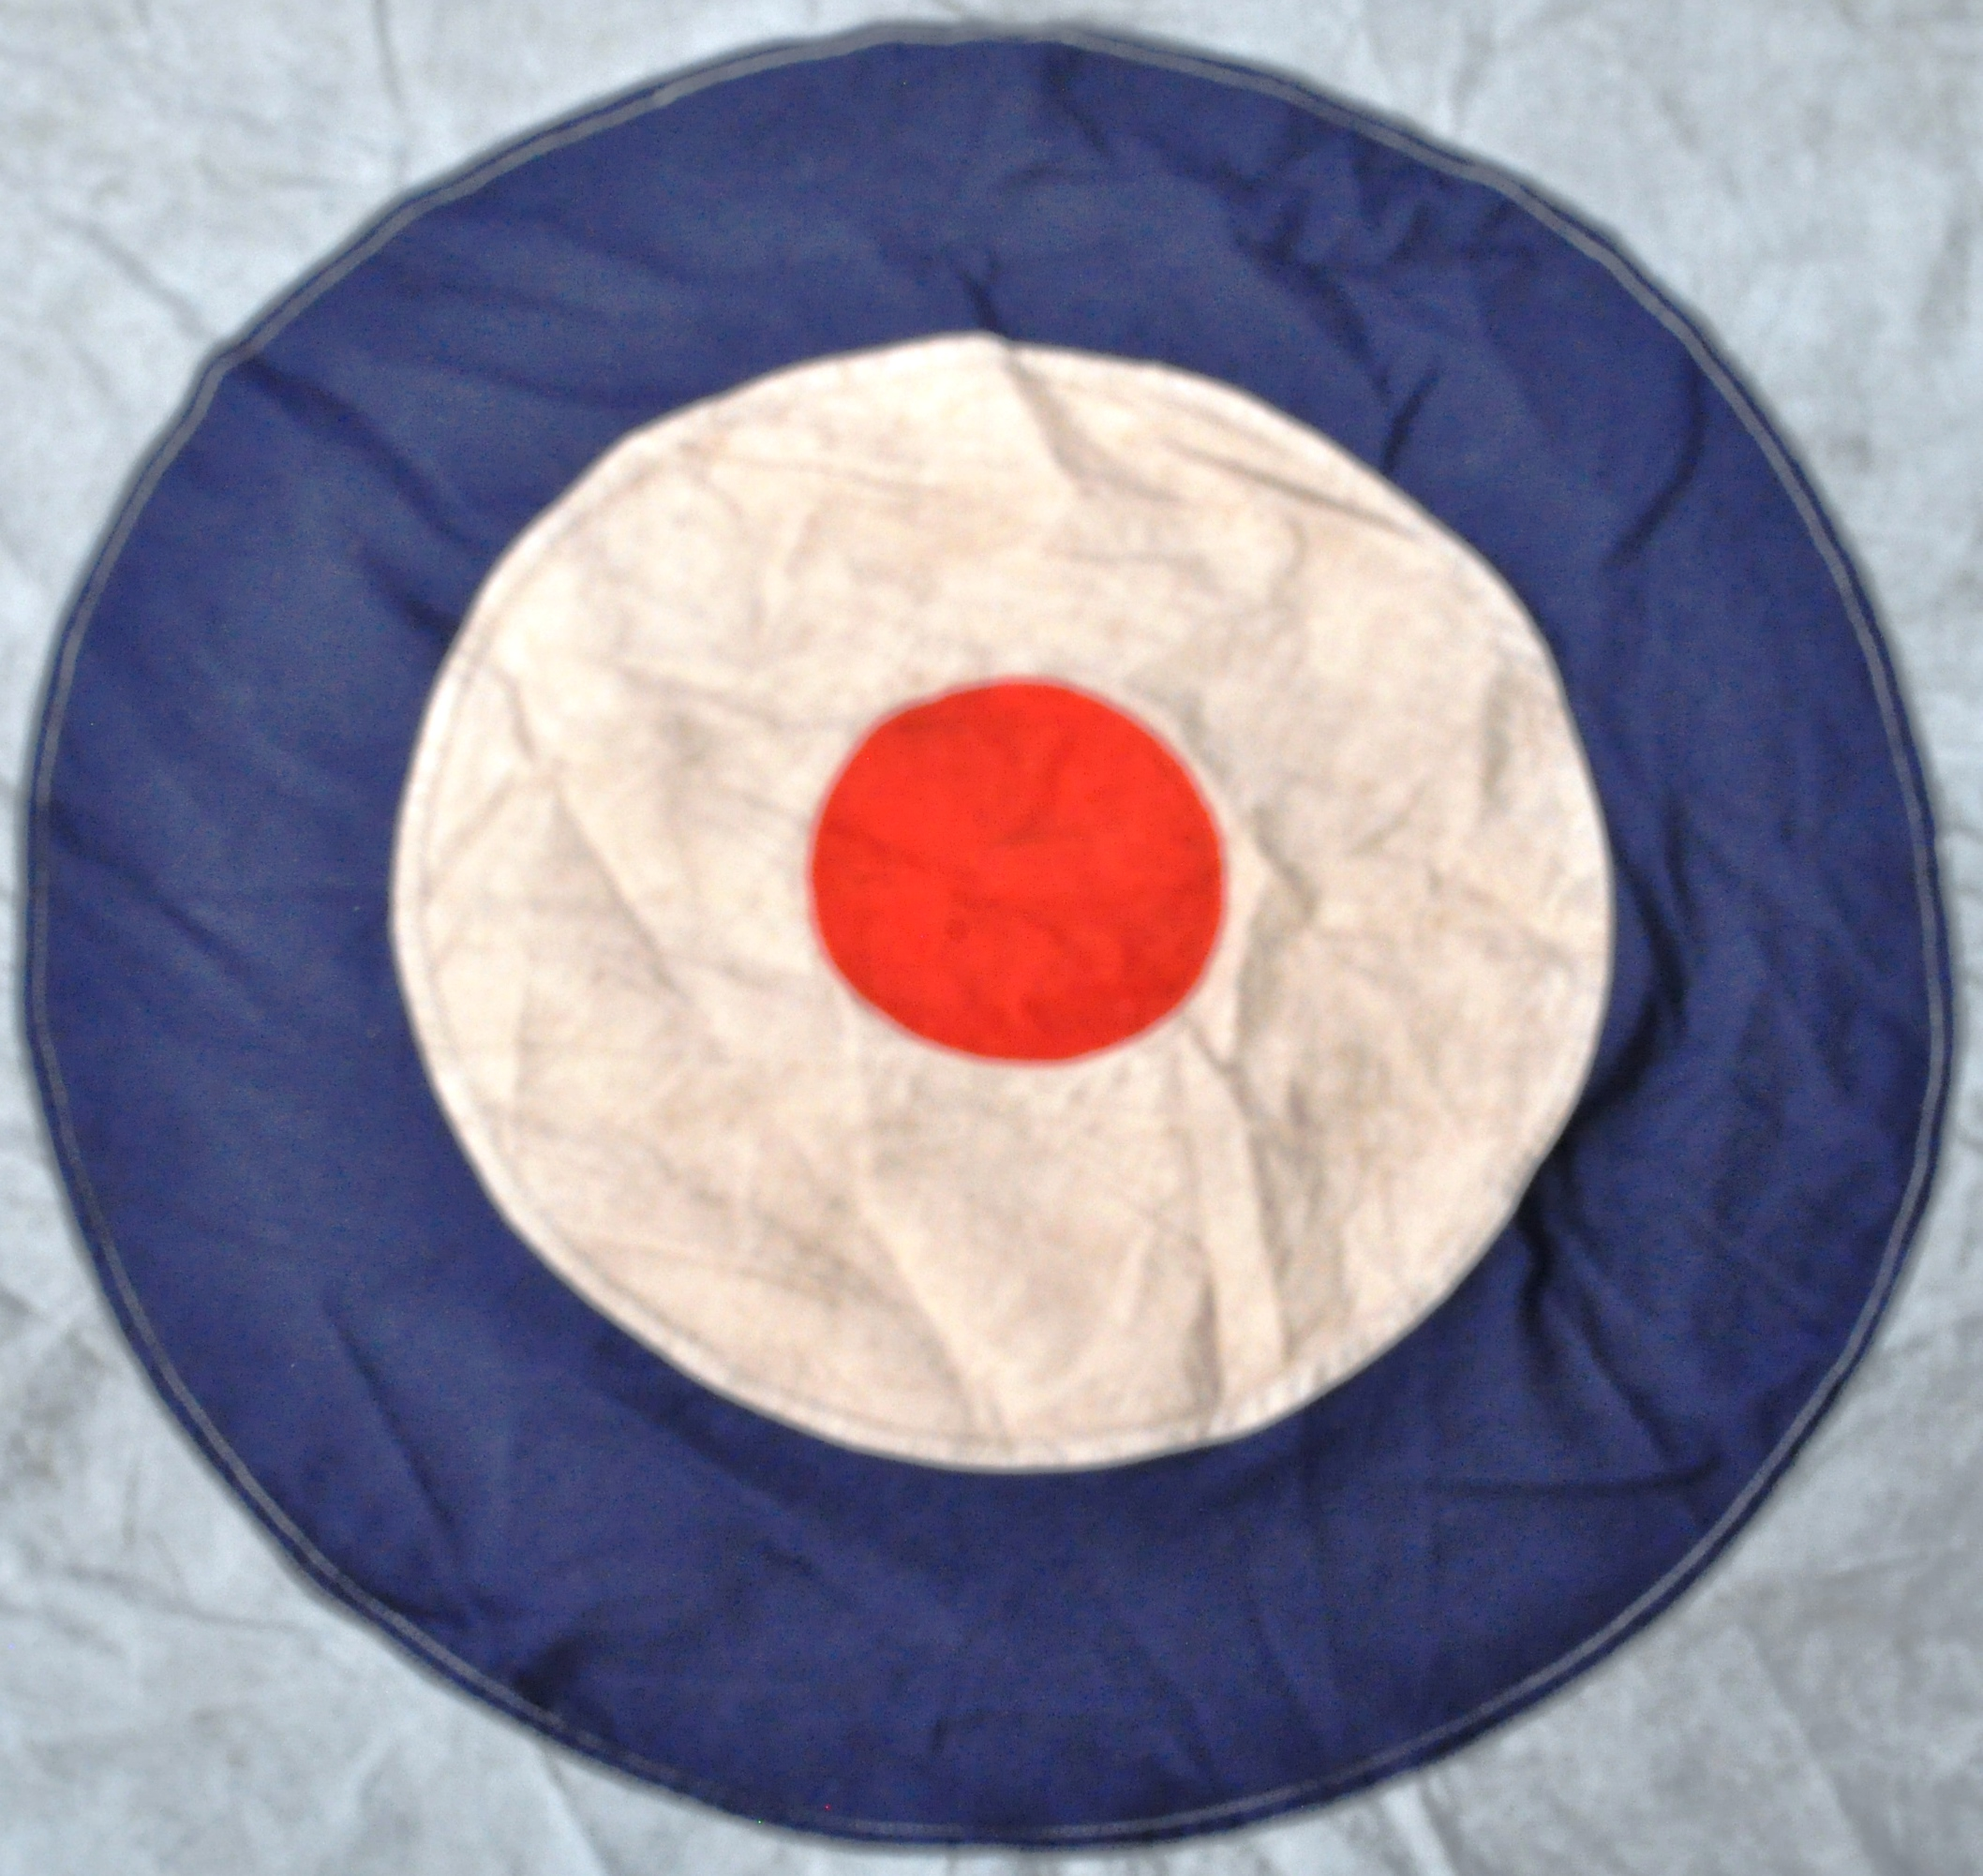 WWII SECOND WORLD WAR TYPE RAF AIRFIELD FLAG - DEBDEN - Image 4 of 8